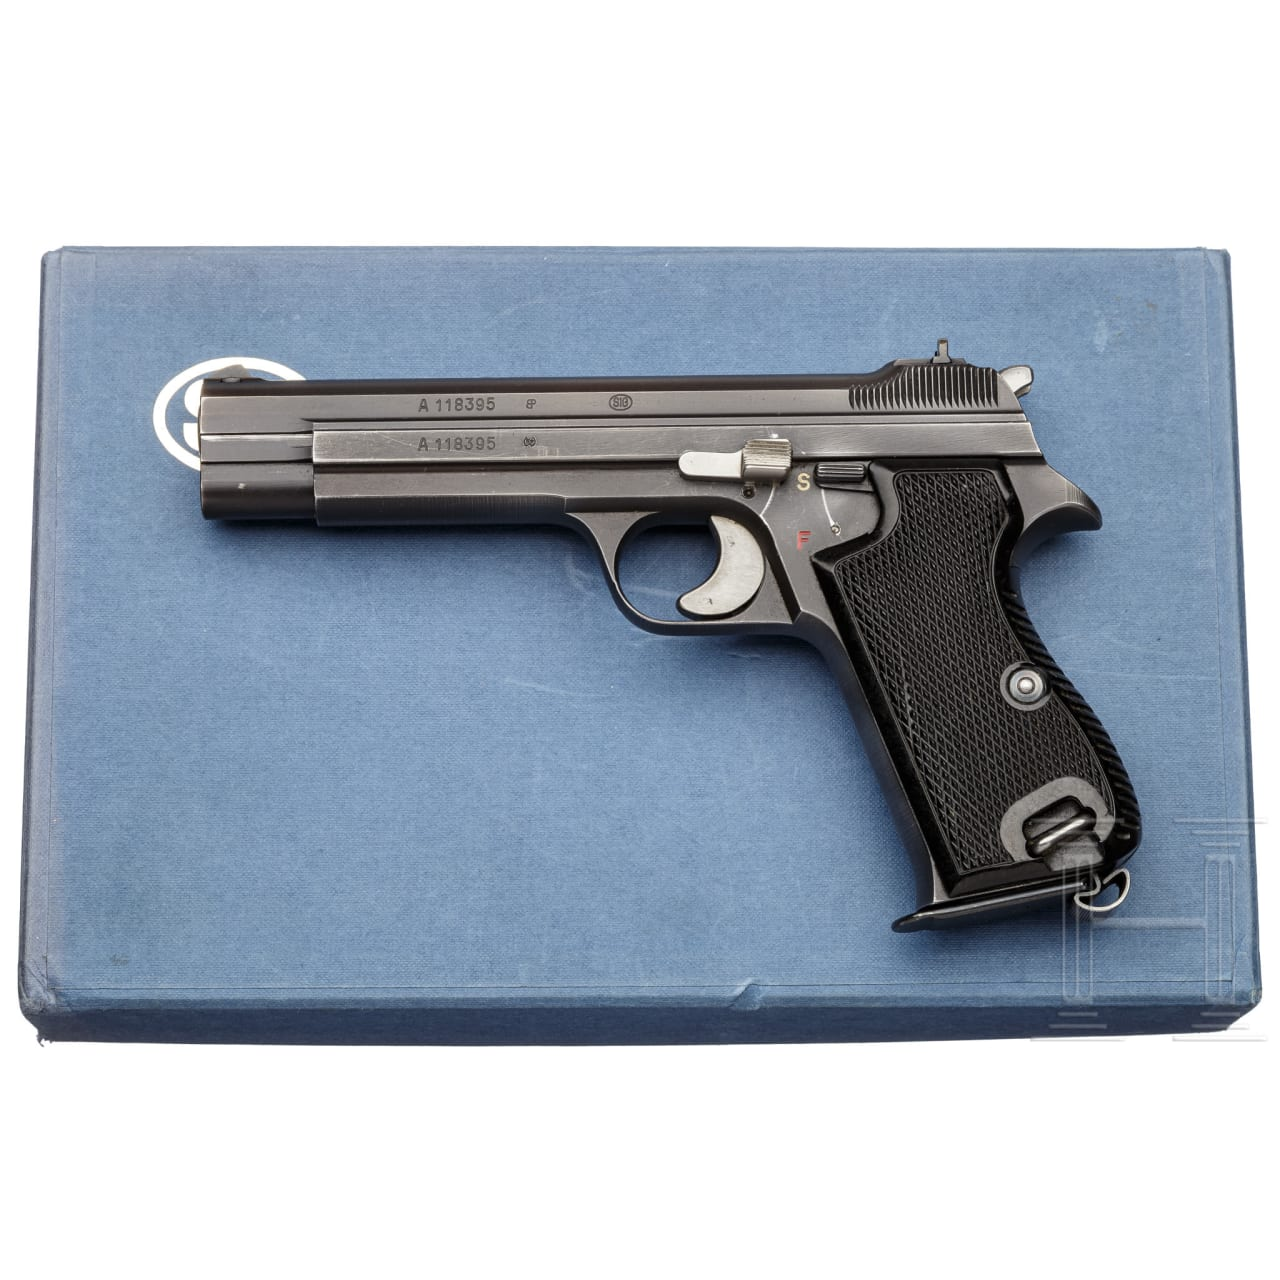 A SIG P 210 (Pistol 49), in box